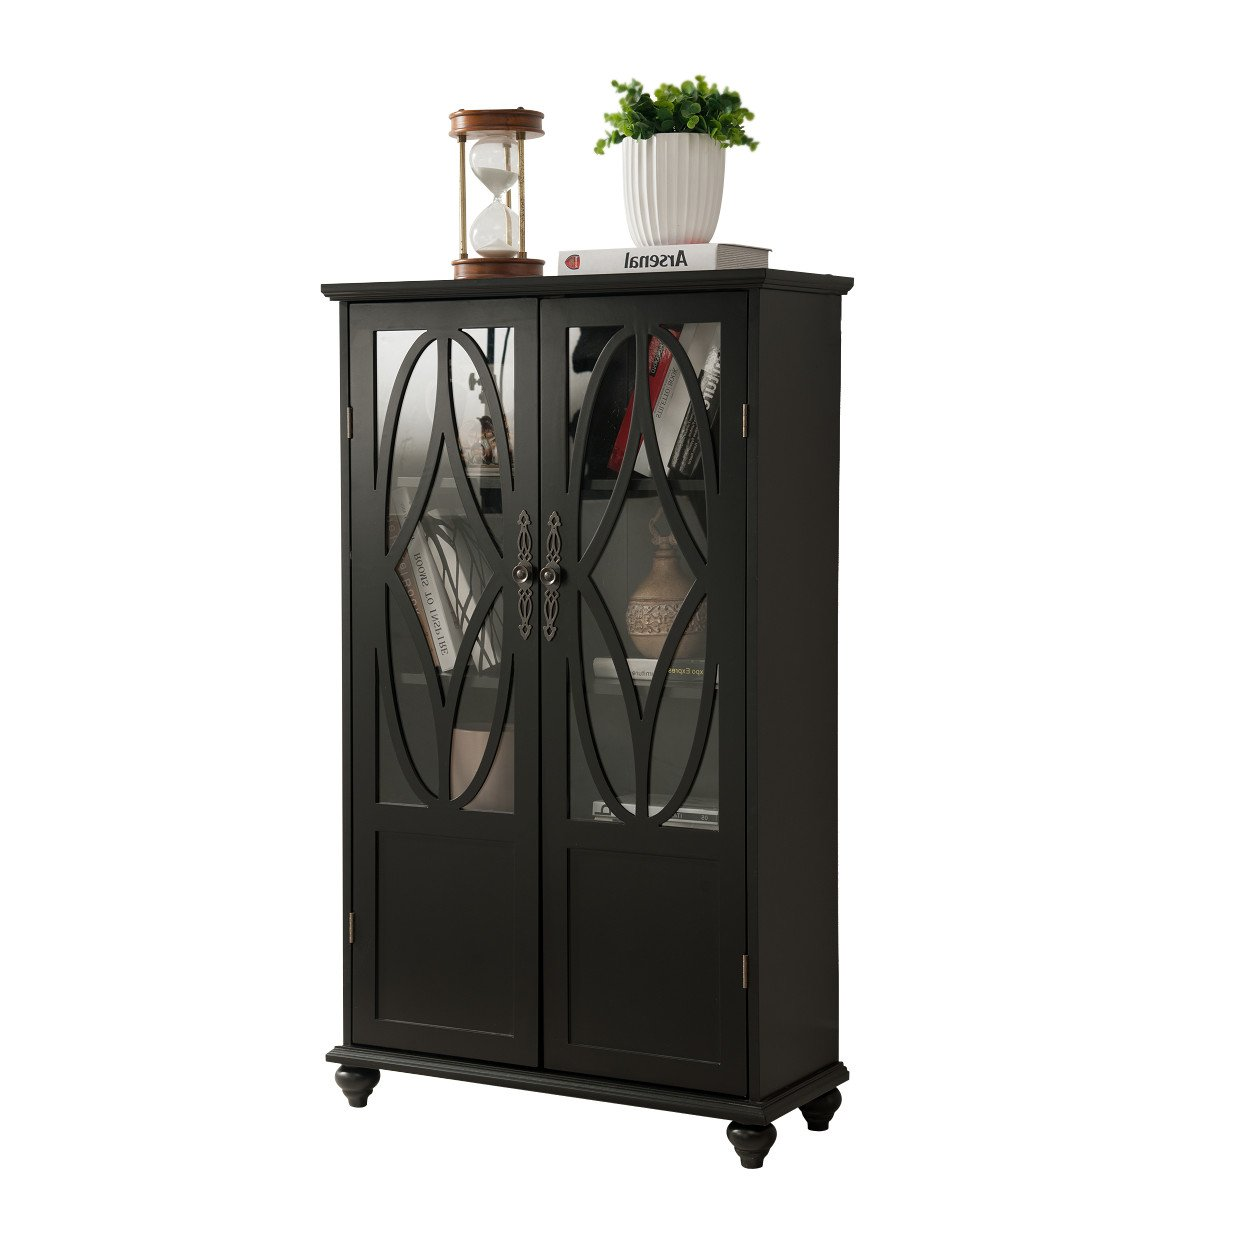 Amazon.com : Black Wood Curio Bookcase Display Storage Cabinet With Glass  Sliding Doors : Office Products